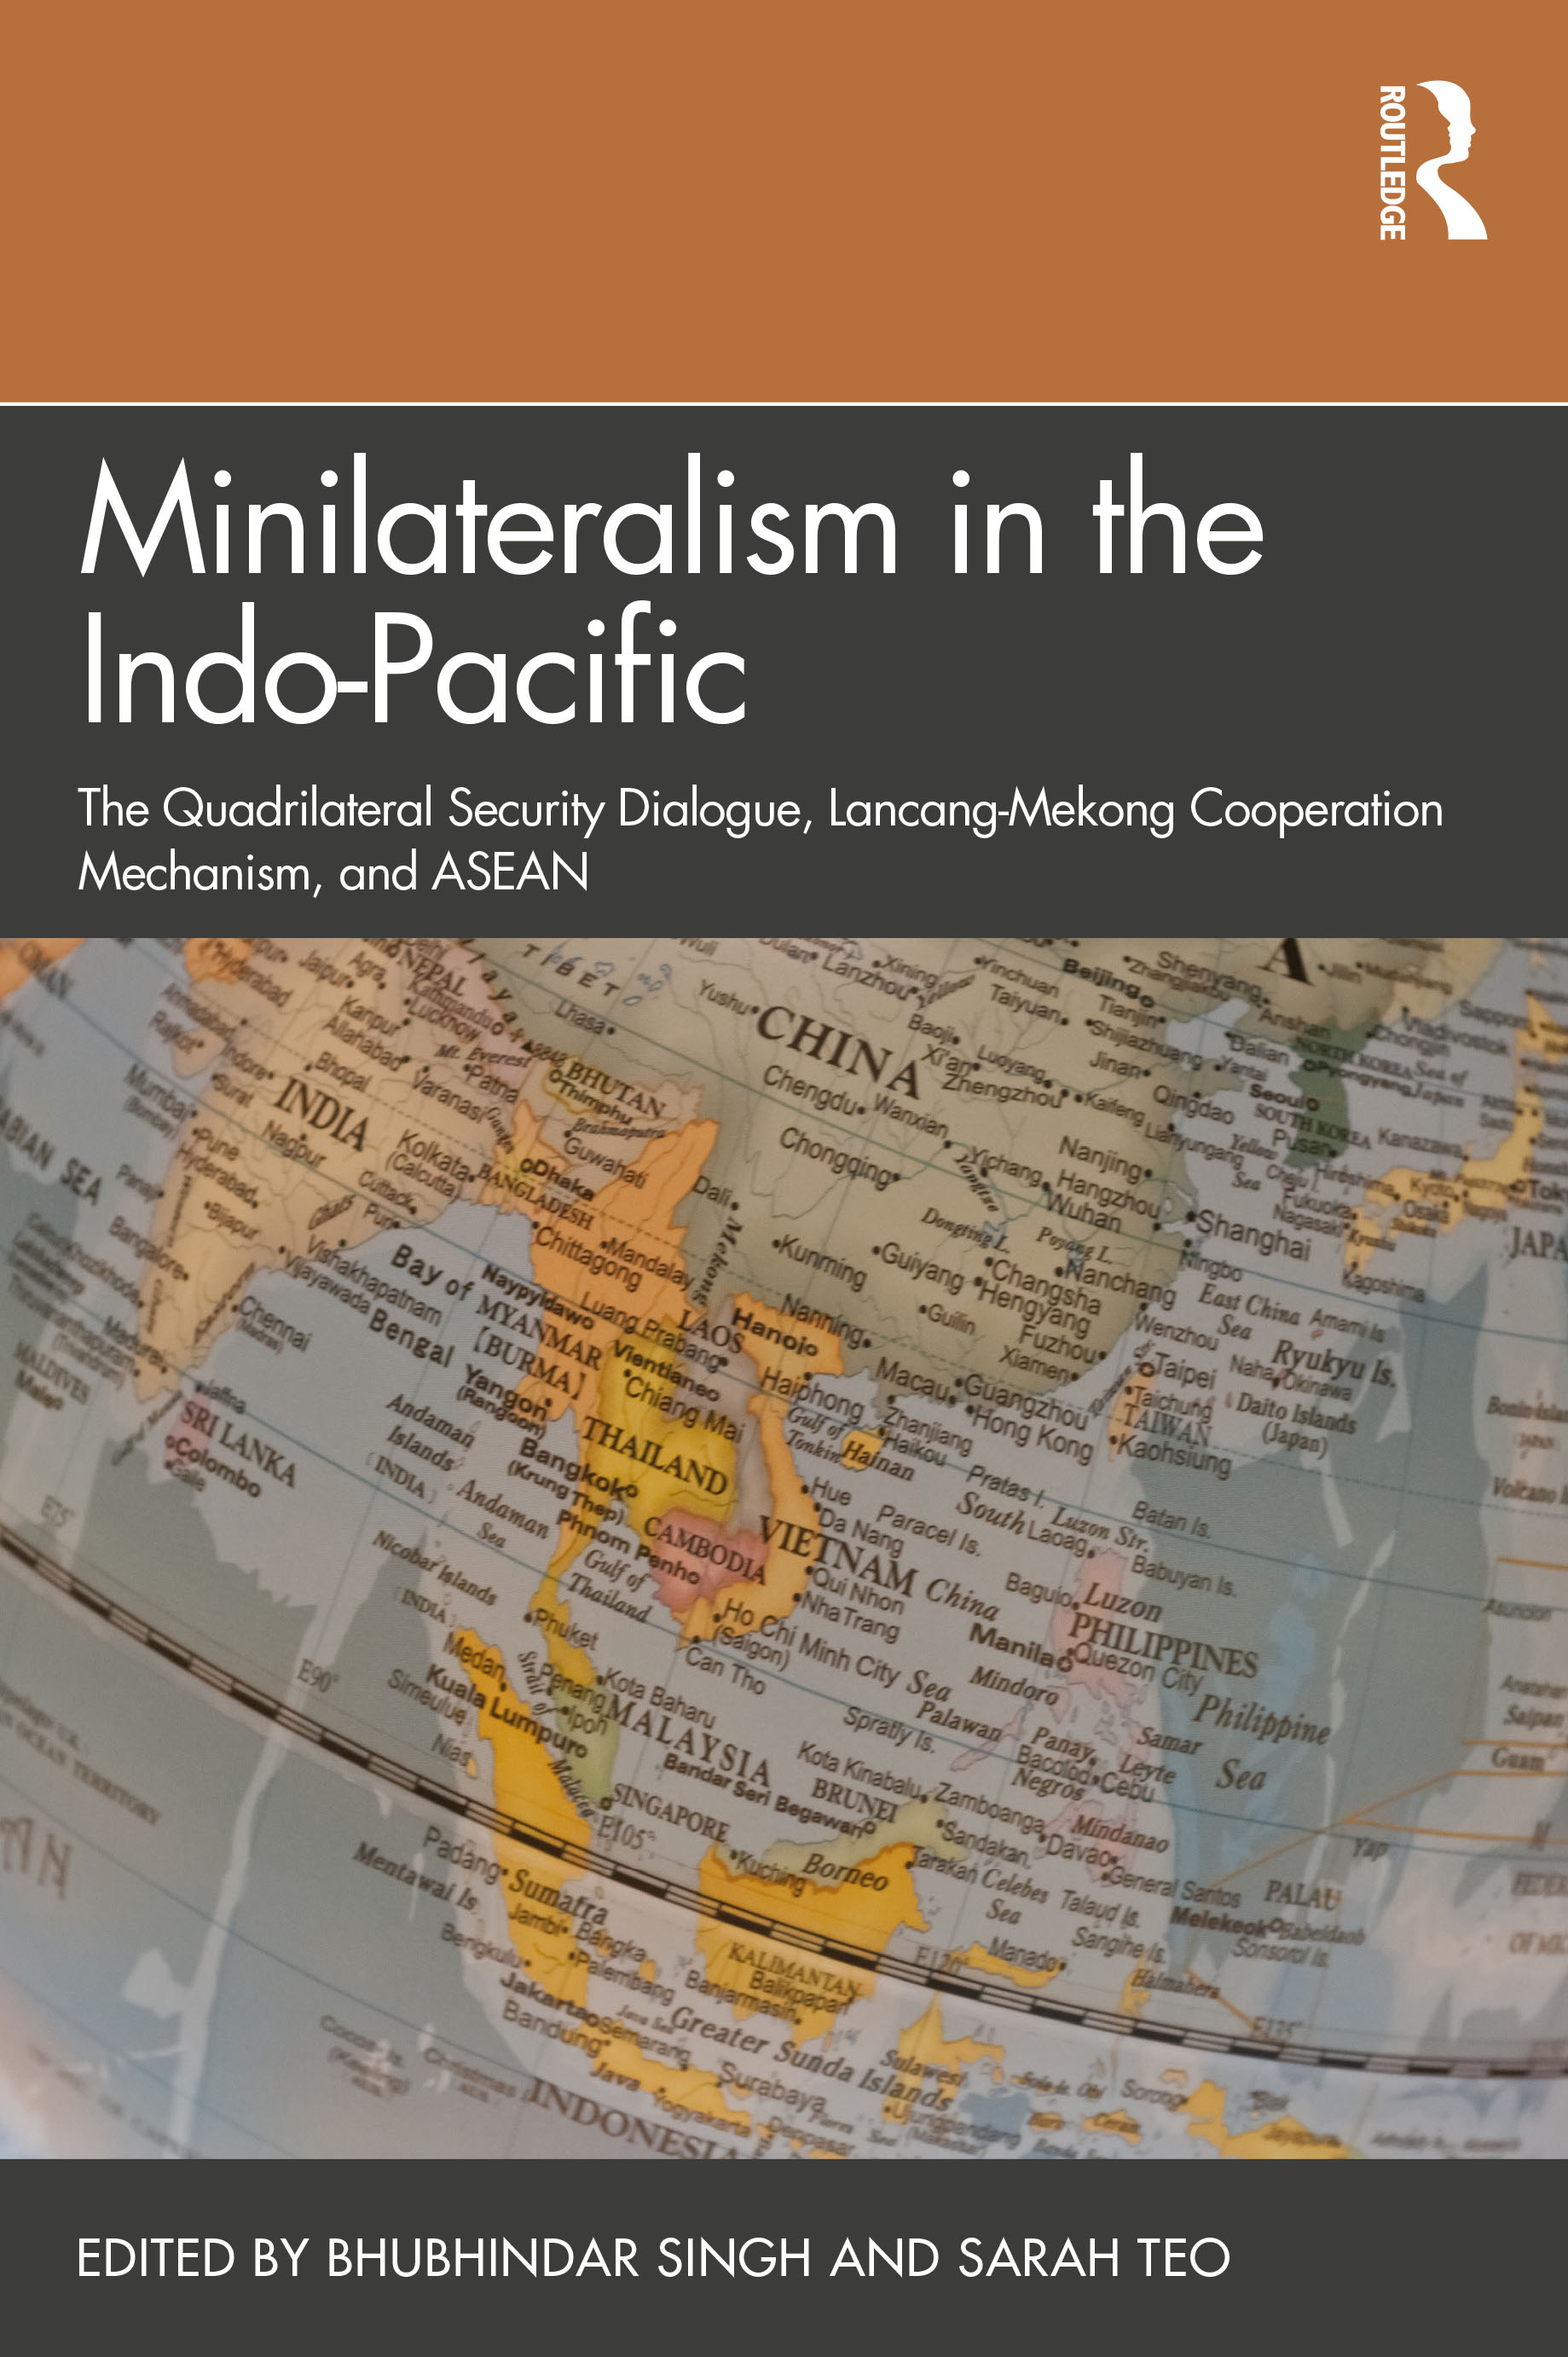 Minilateralism in the Indo-Pacific: The Quadrilateral Security Dialogue, Lancang-Mekong Cooperation Mechanism, and ASEAN book cover